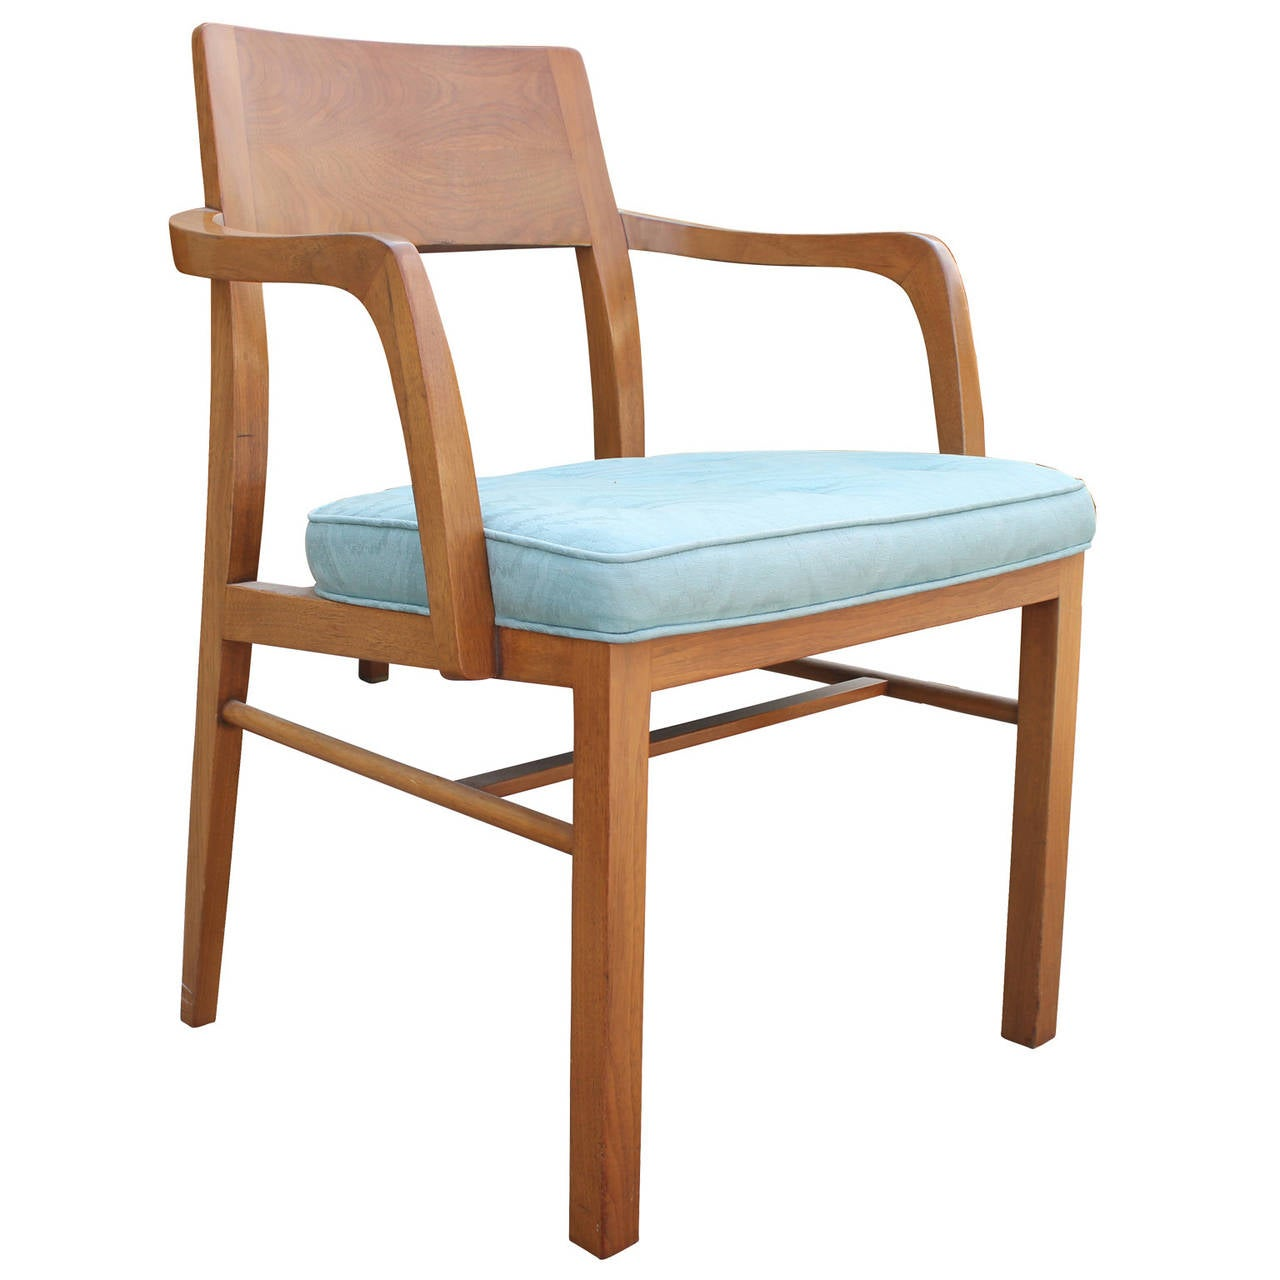 Dylanpfohlcom Dining Room Chairs 187 Archive 28 Wood